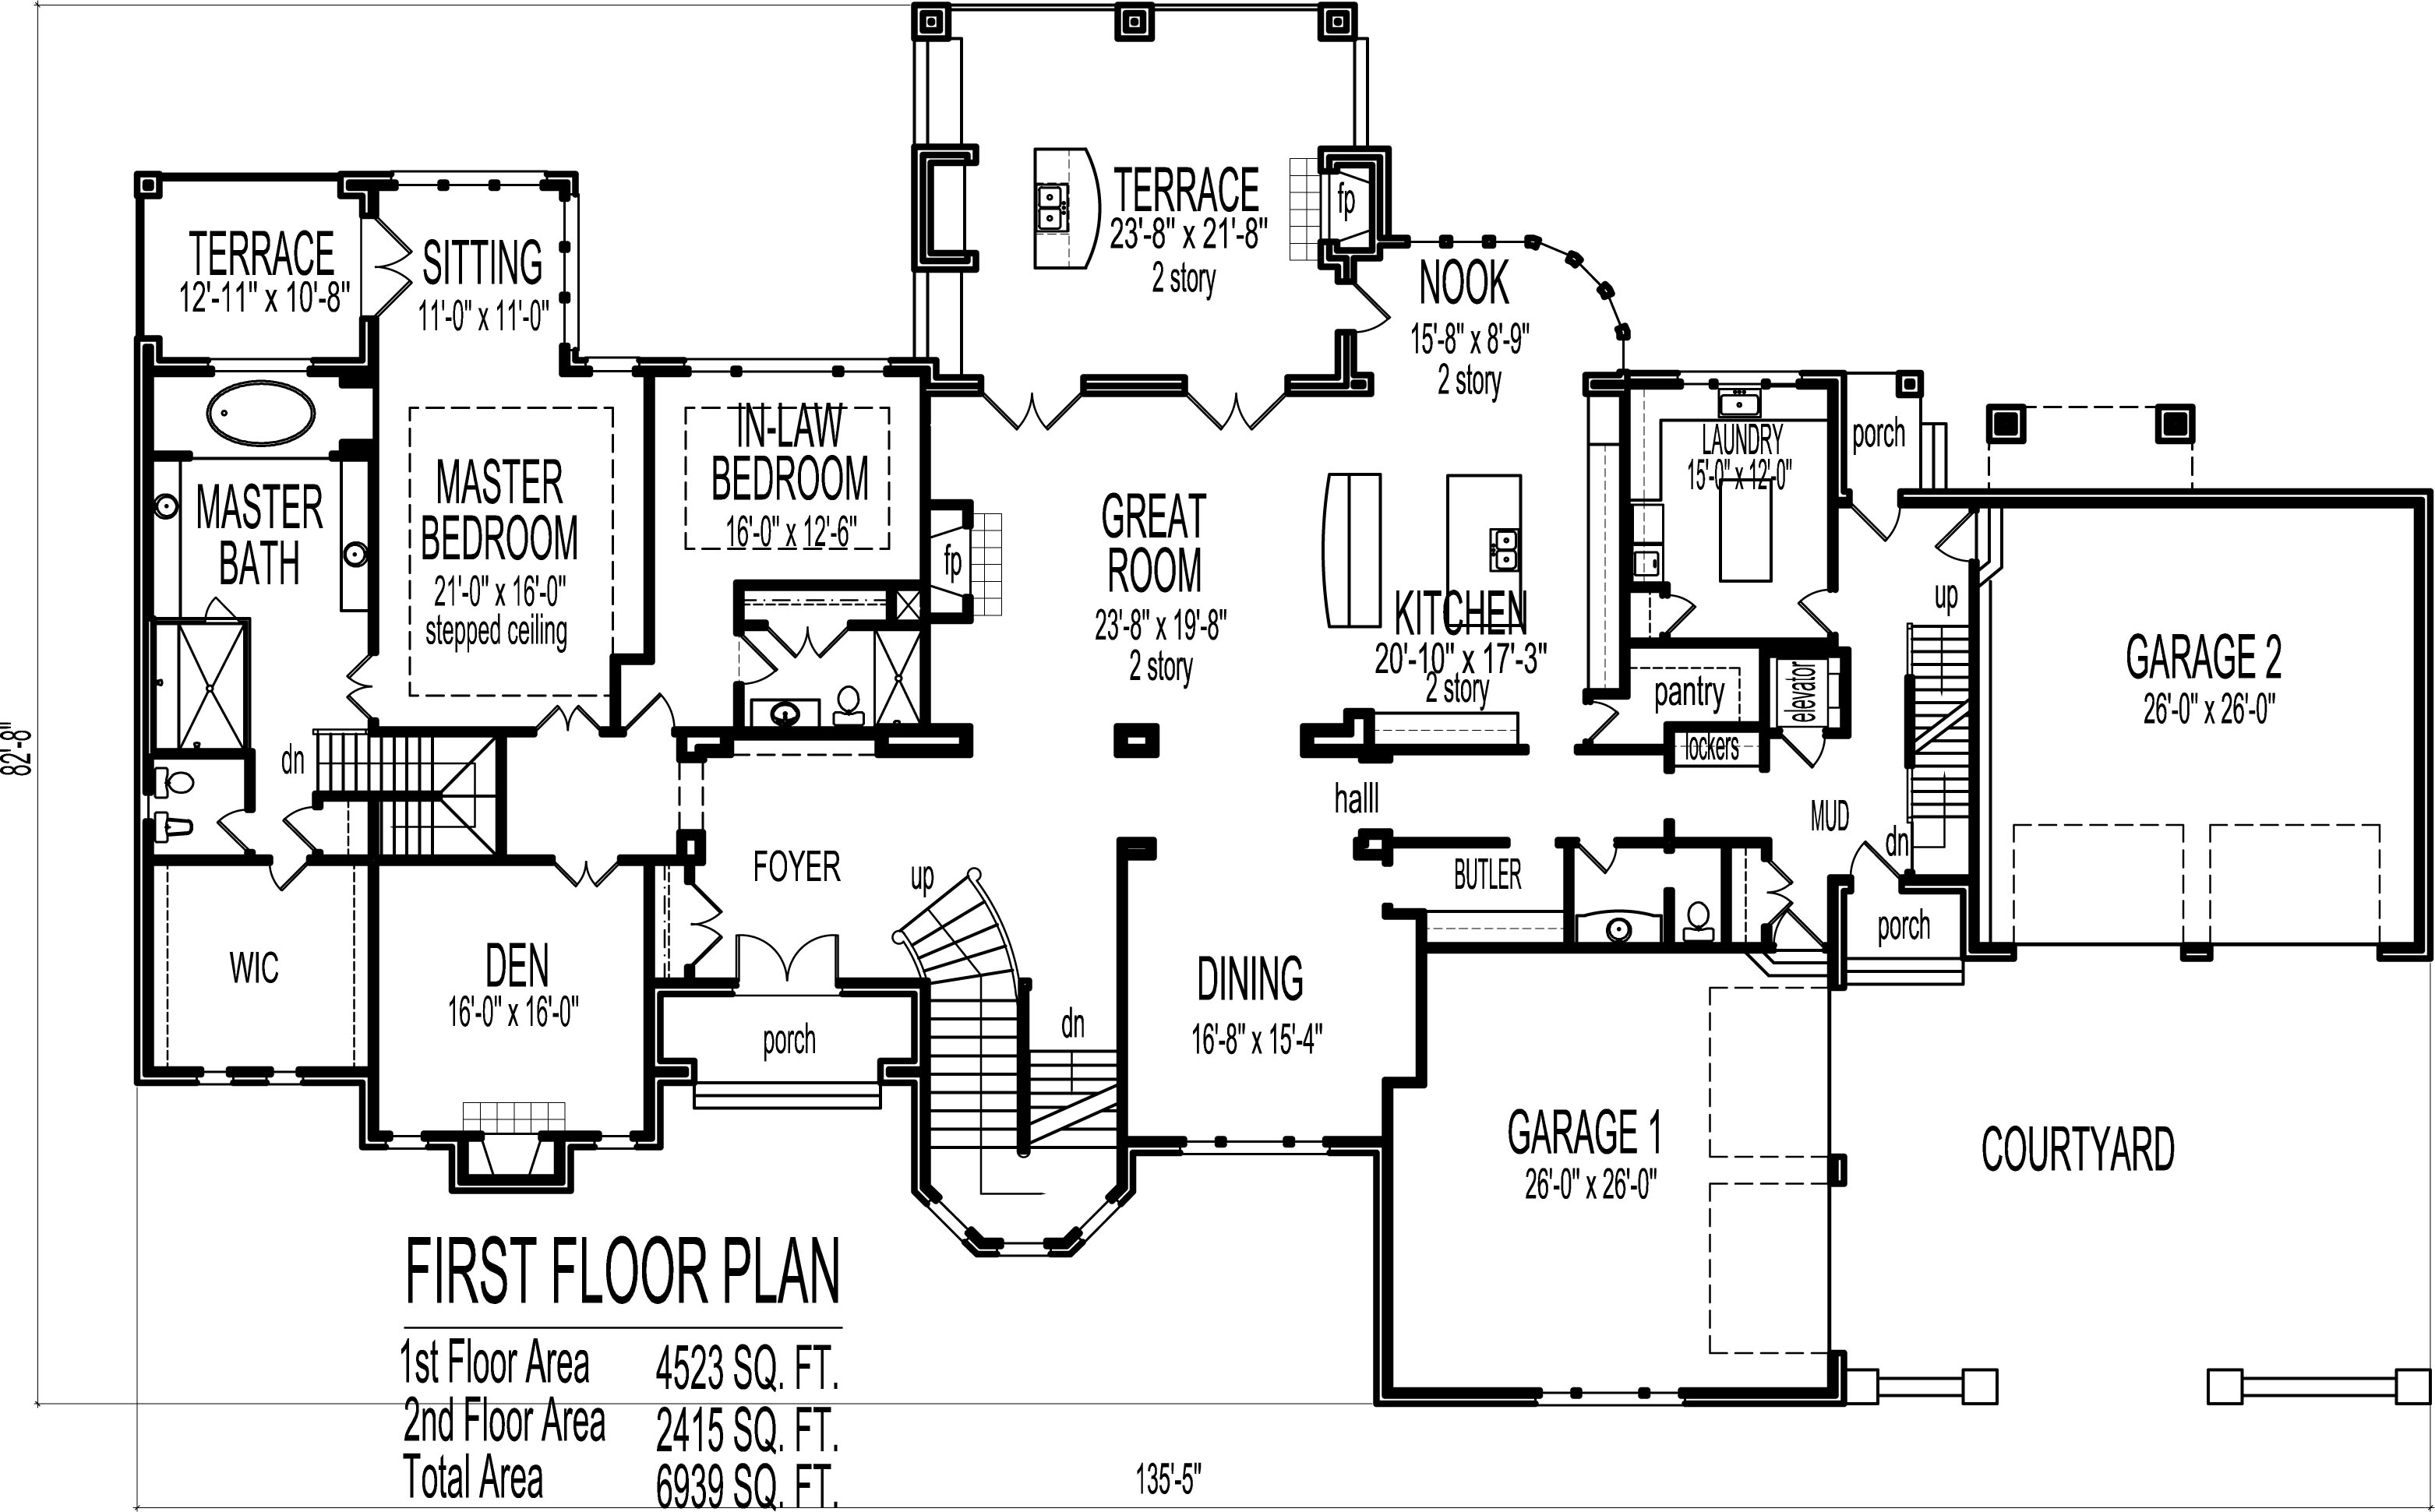 Dream House Floor Plans Blueprints 2 Story 5 Bedroom Large: 5 bedroom floor plans